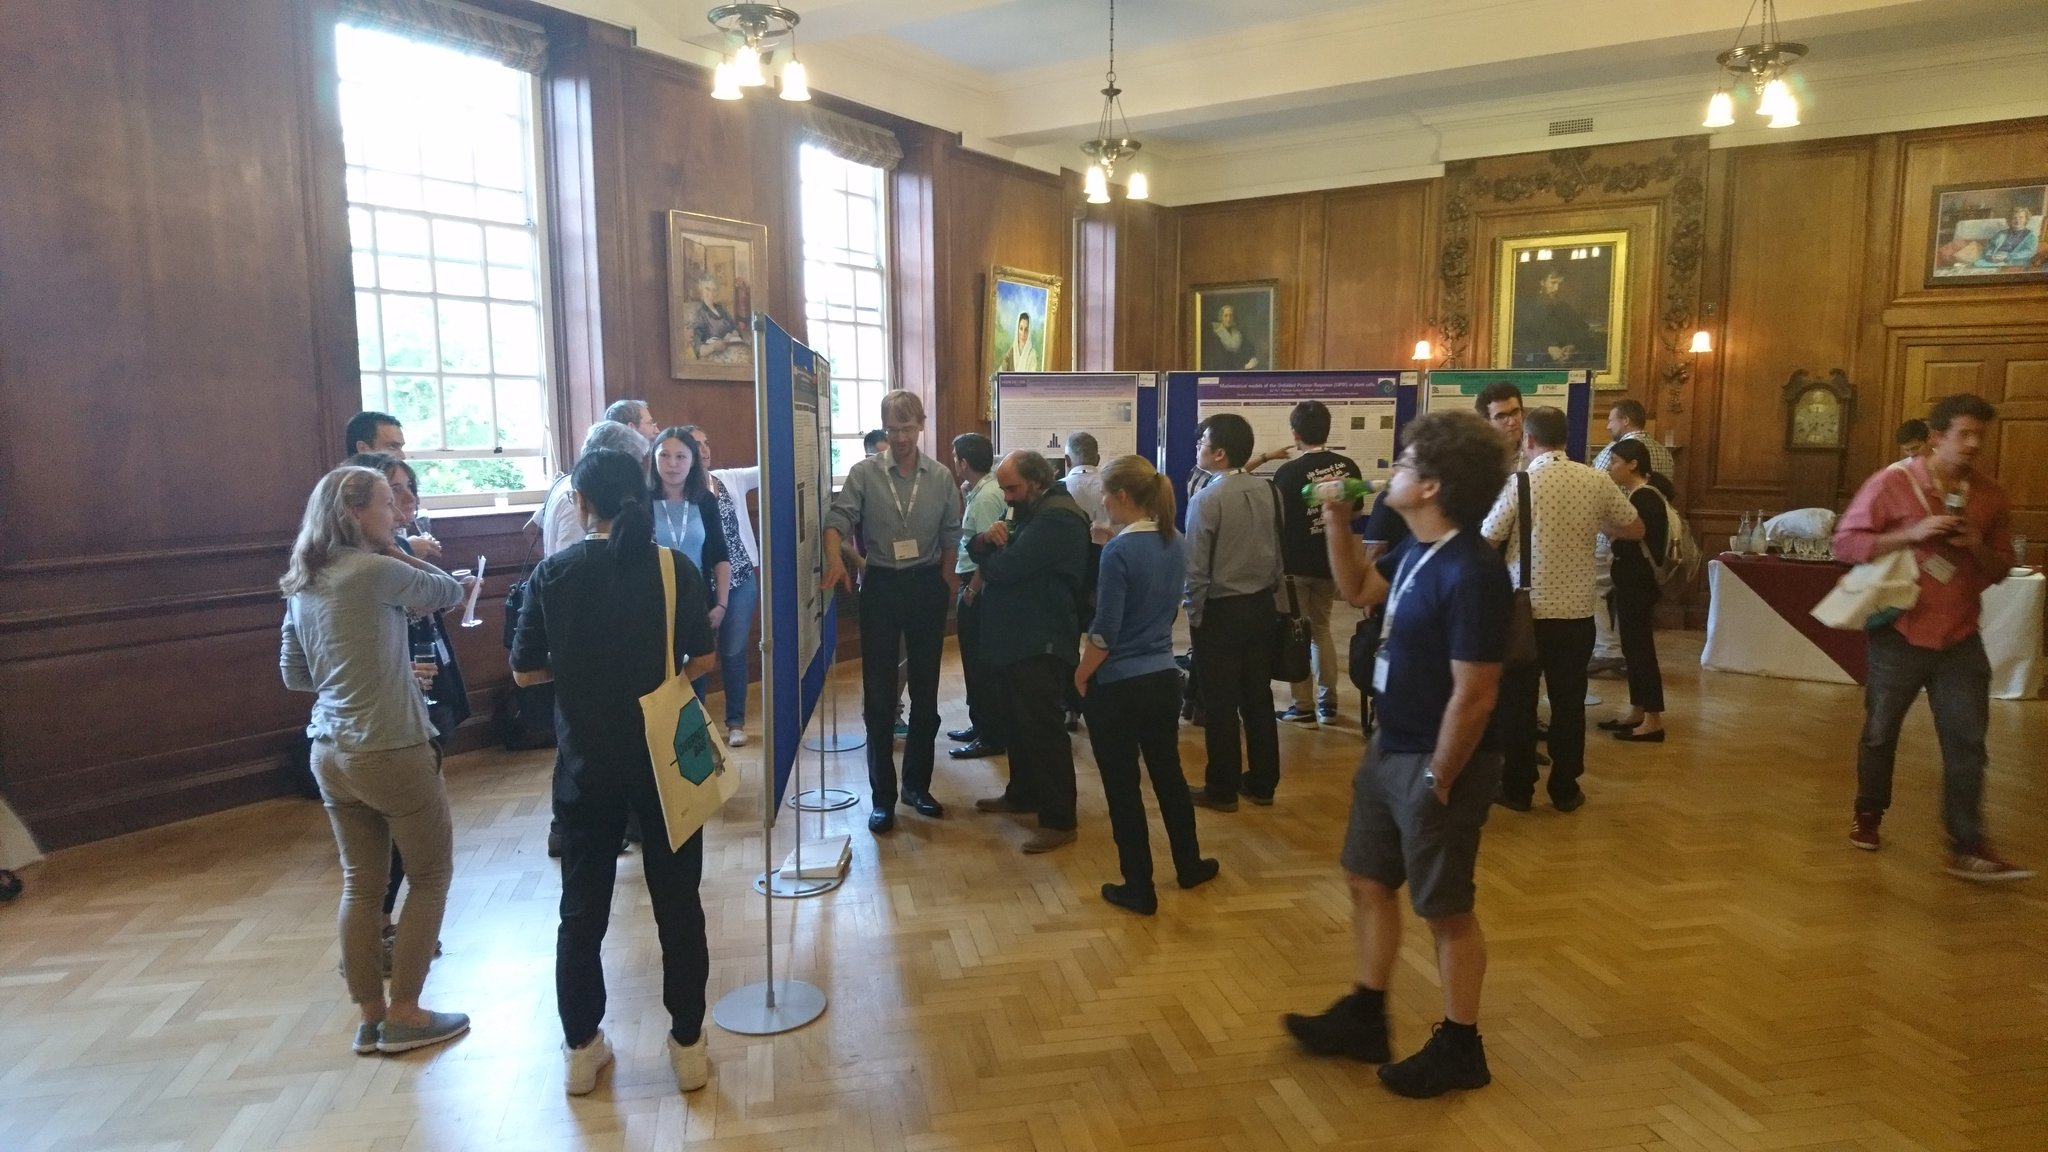 #sebmsc16 Poster and drinks reception at #lmhoxford. Let day 2 commence! https://t.co/qt3WKuq8yY